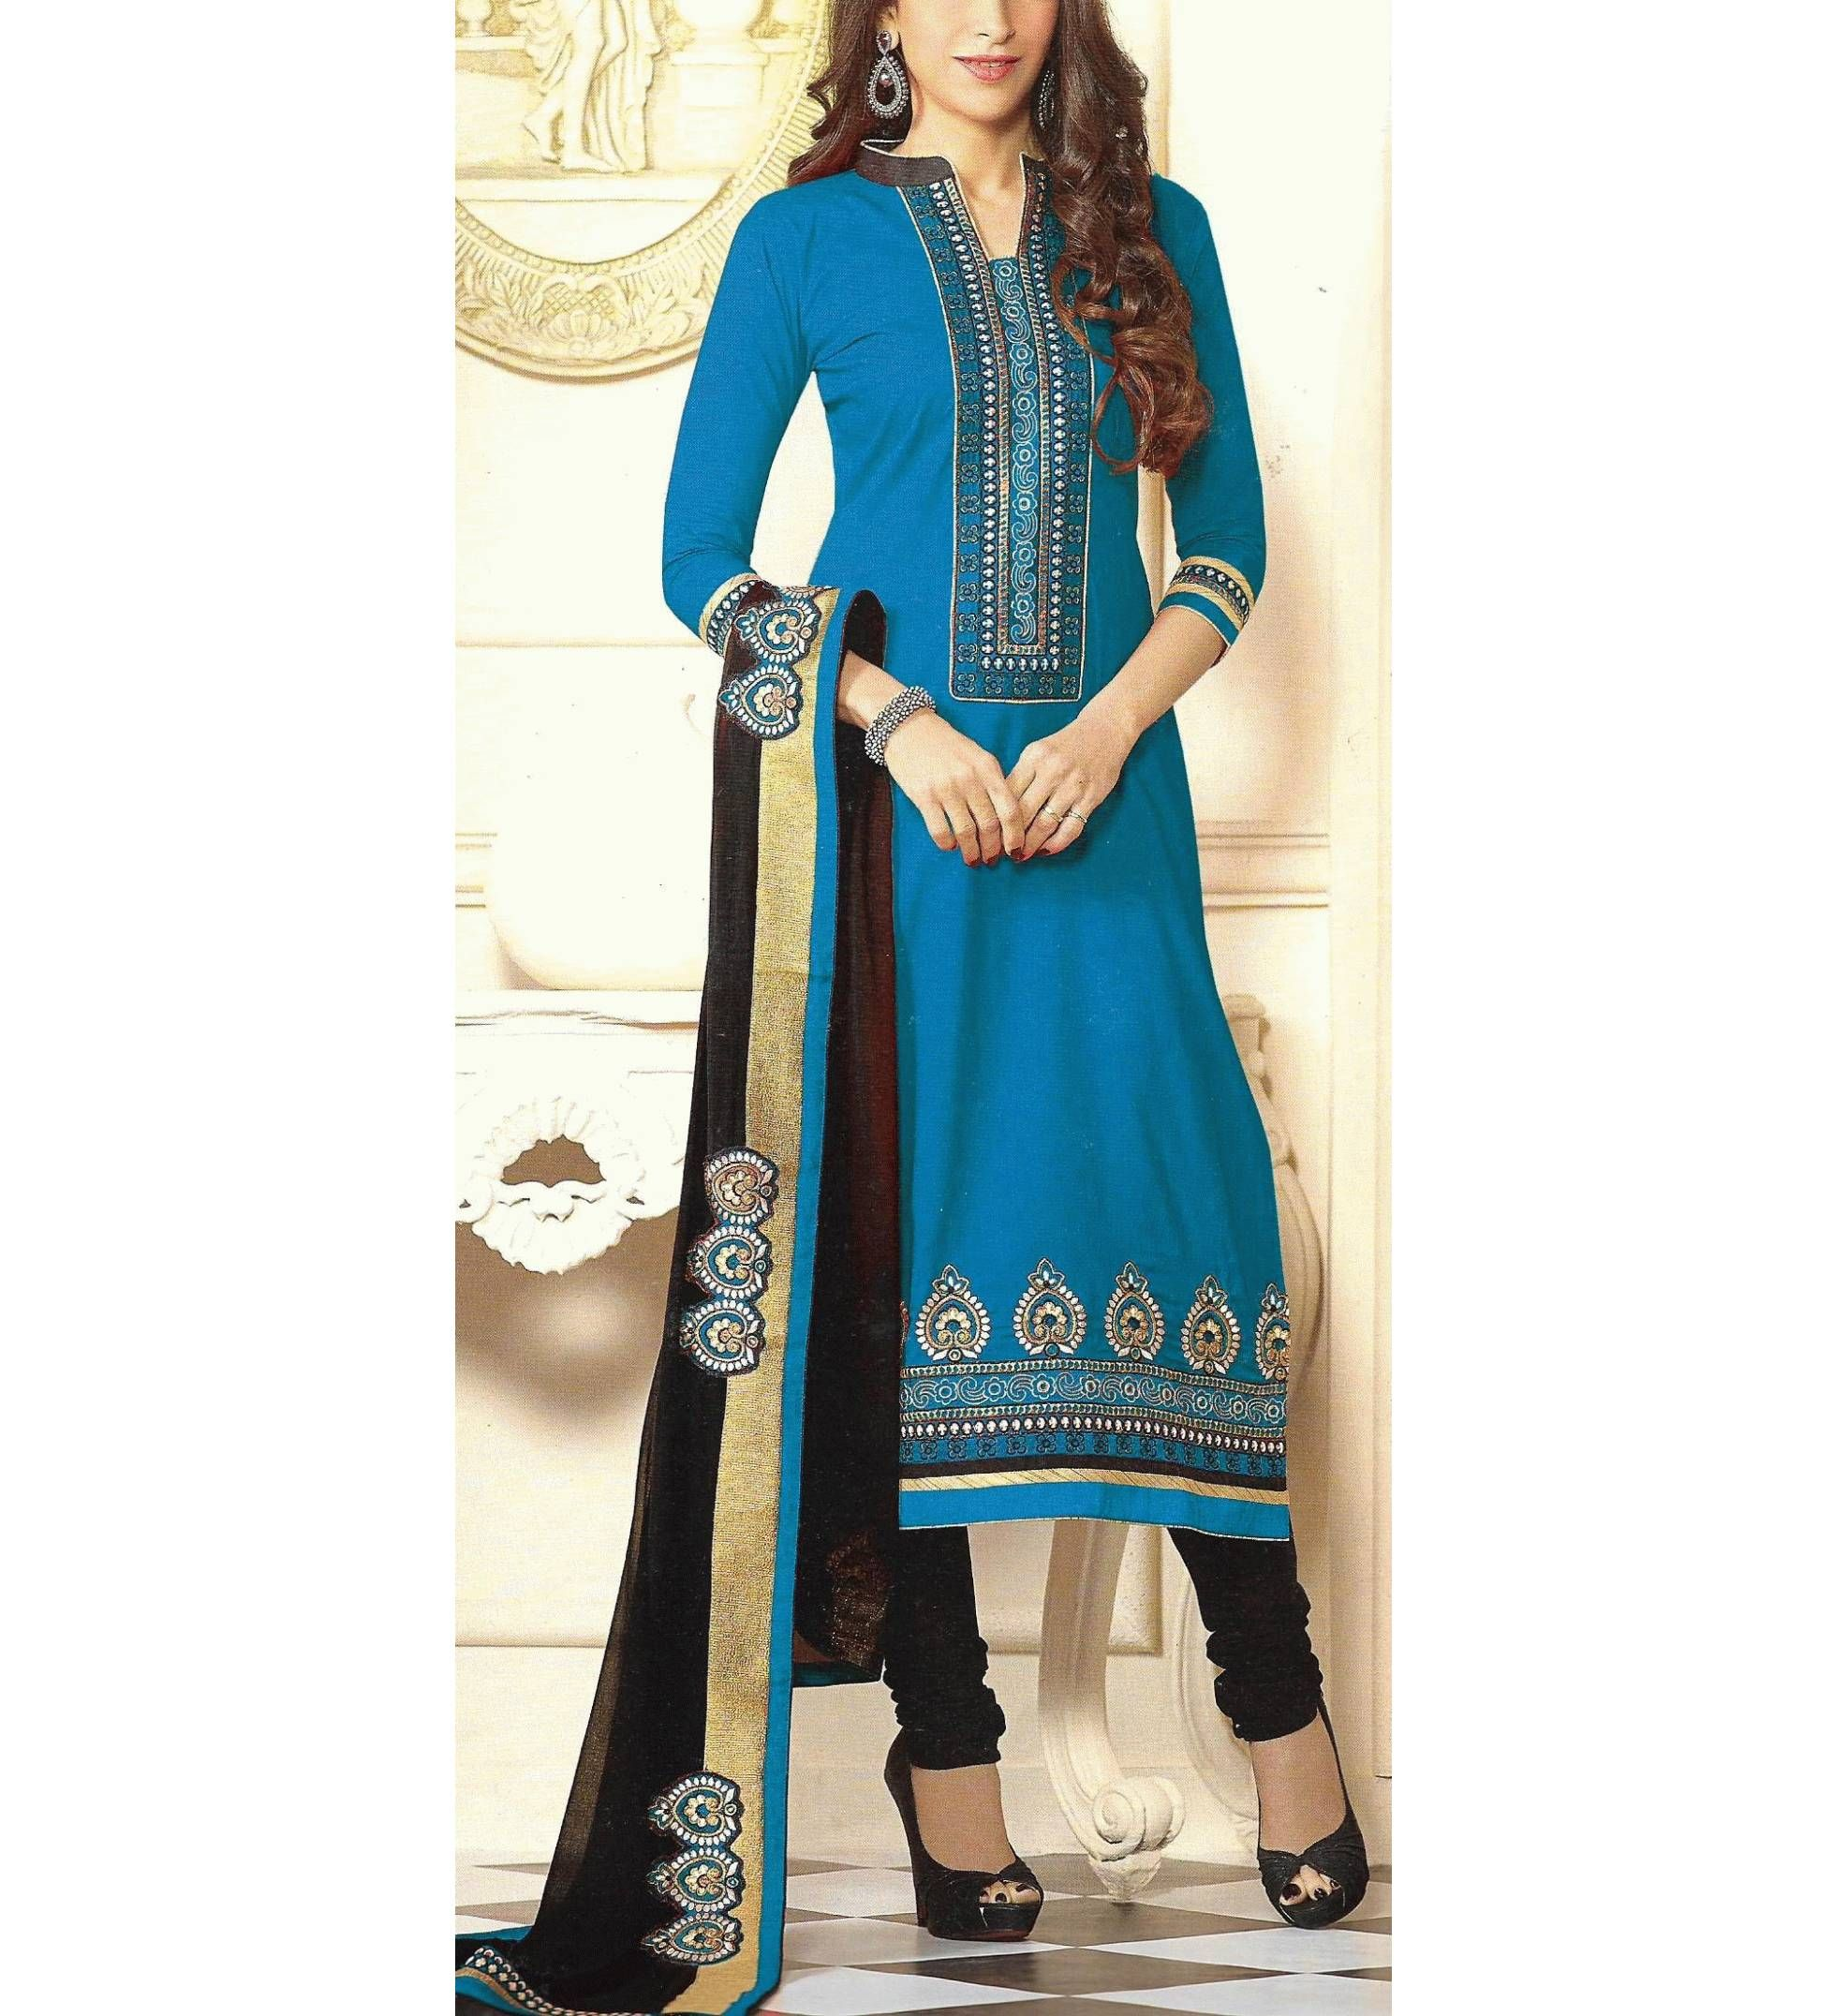 ANKAN Fashions Blue & Black Embroided Patch work Party & Festive ...